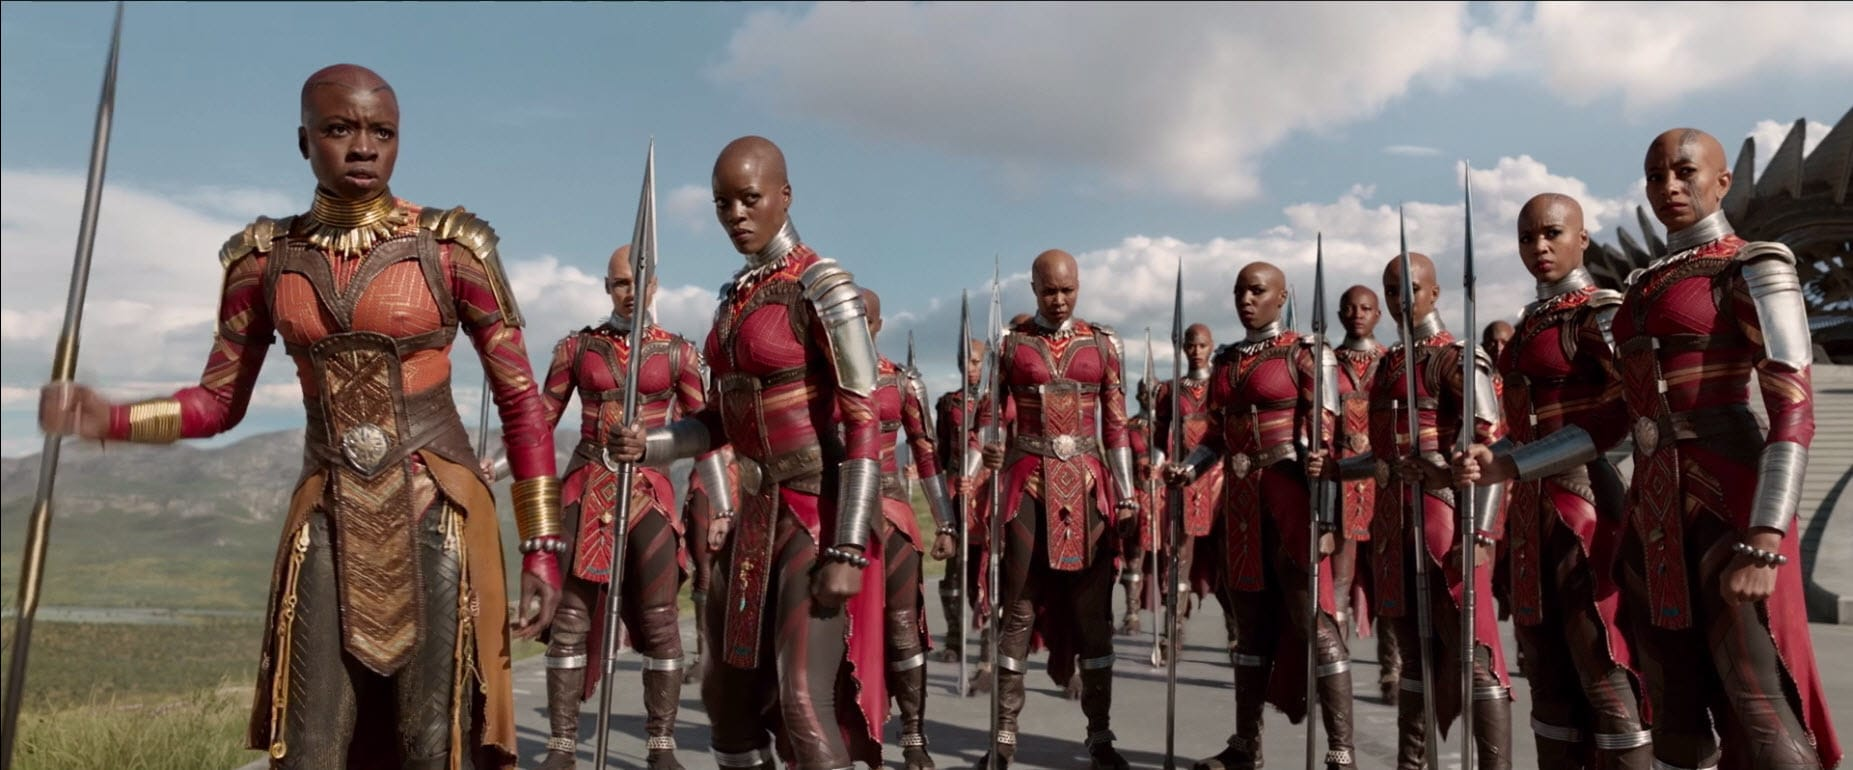 Warriors of Wakanda